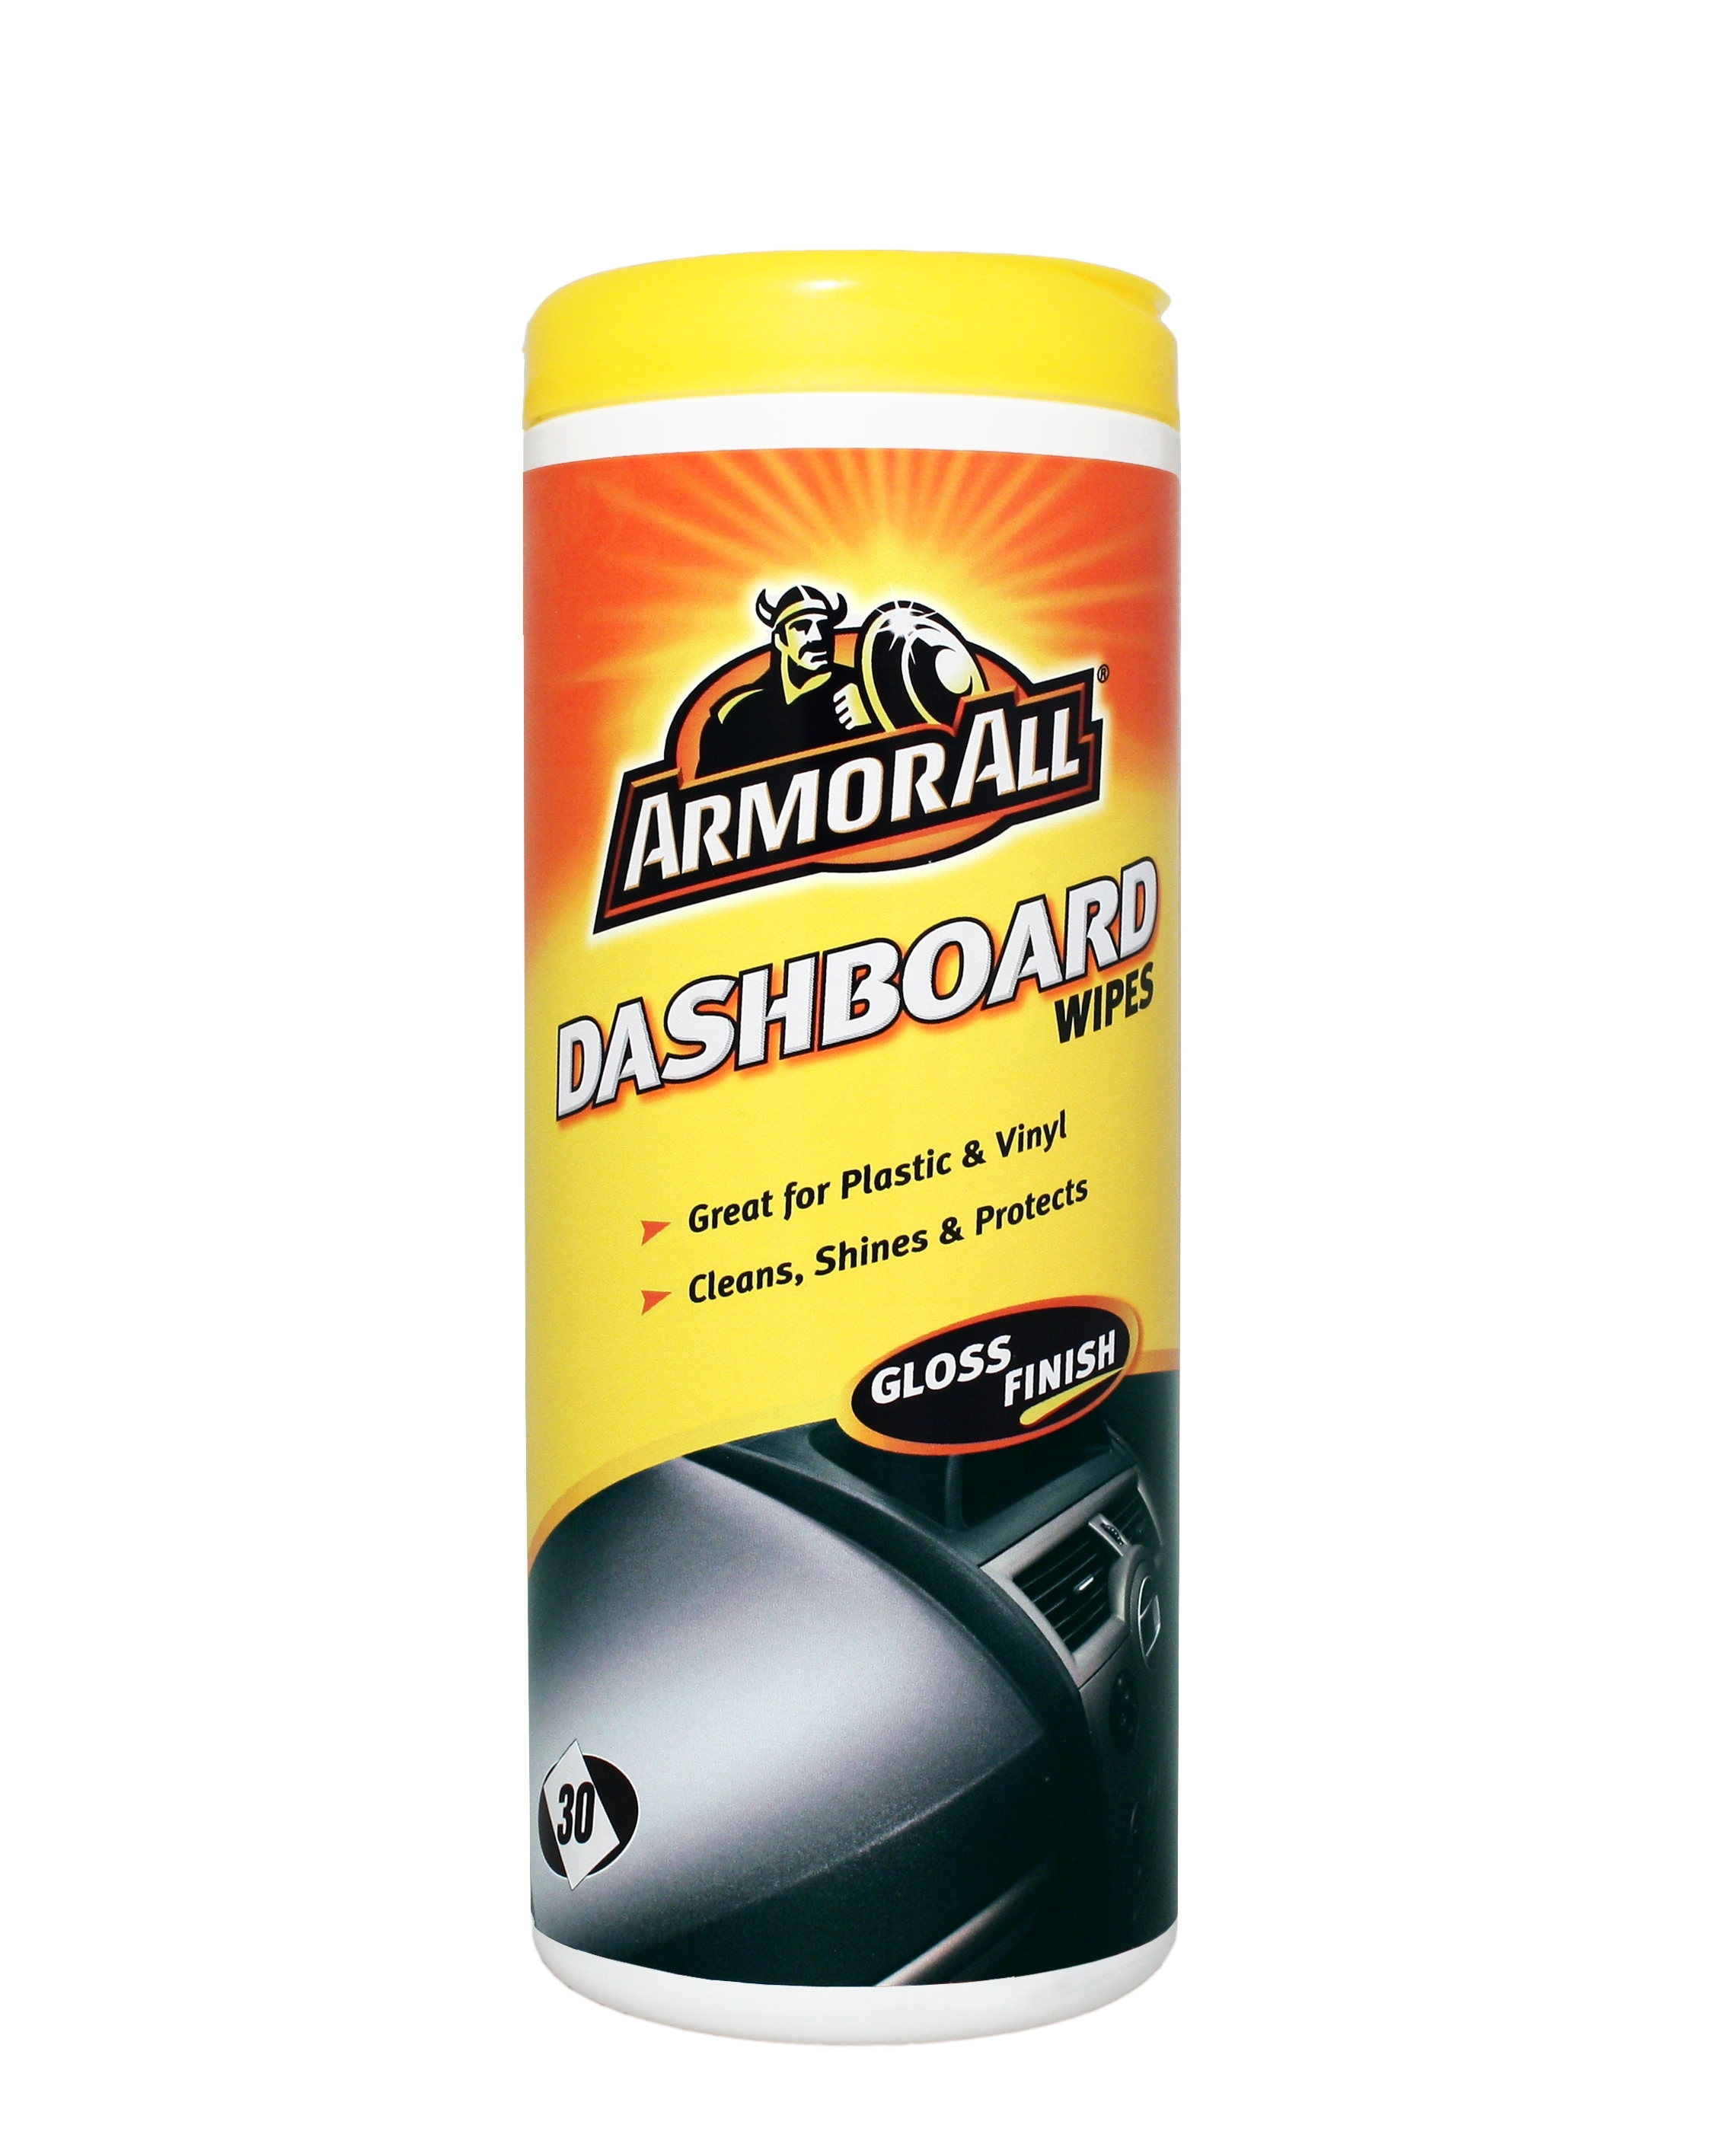 thompsons ltd armorall clo36030en car cleaning interior dashboard gloss finish wipes single. Black Bedroom Furniture Sets. Home Design Ideas